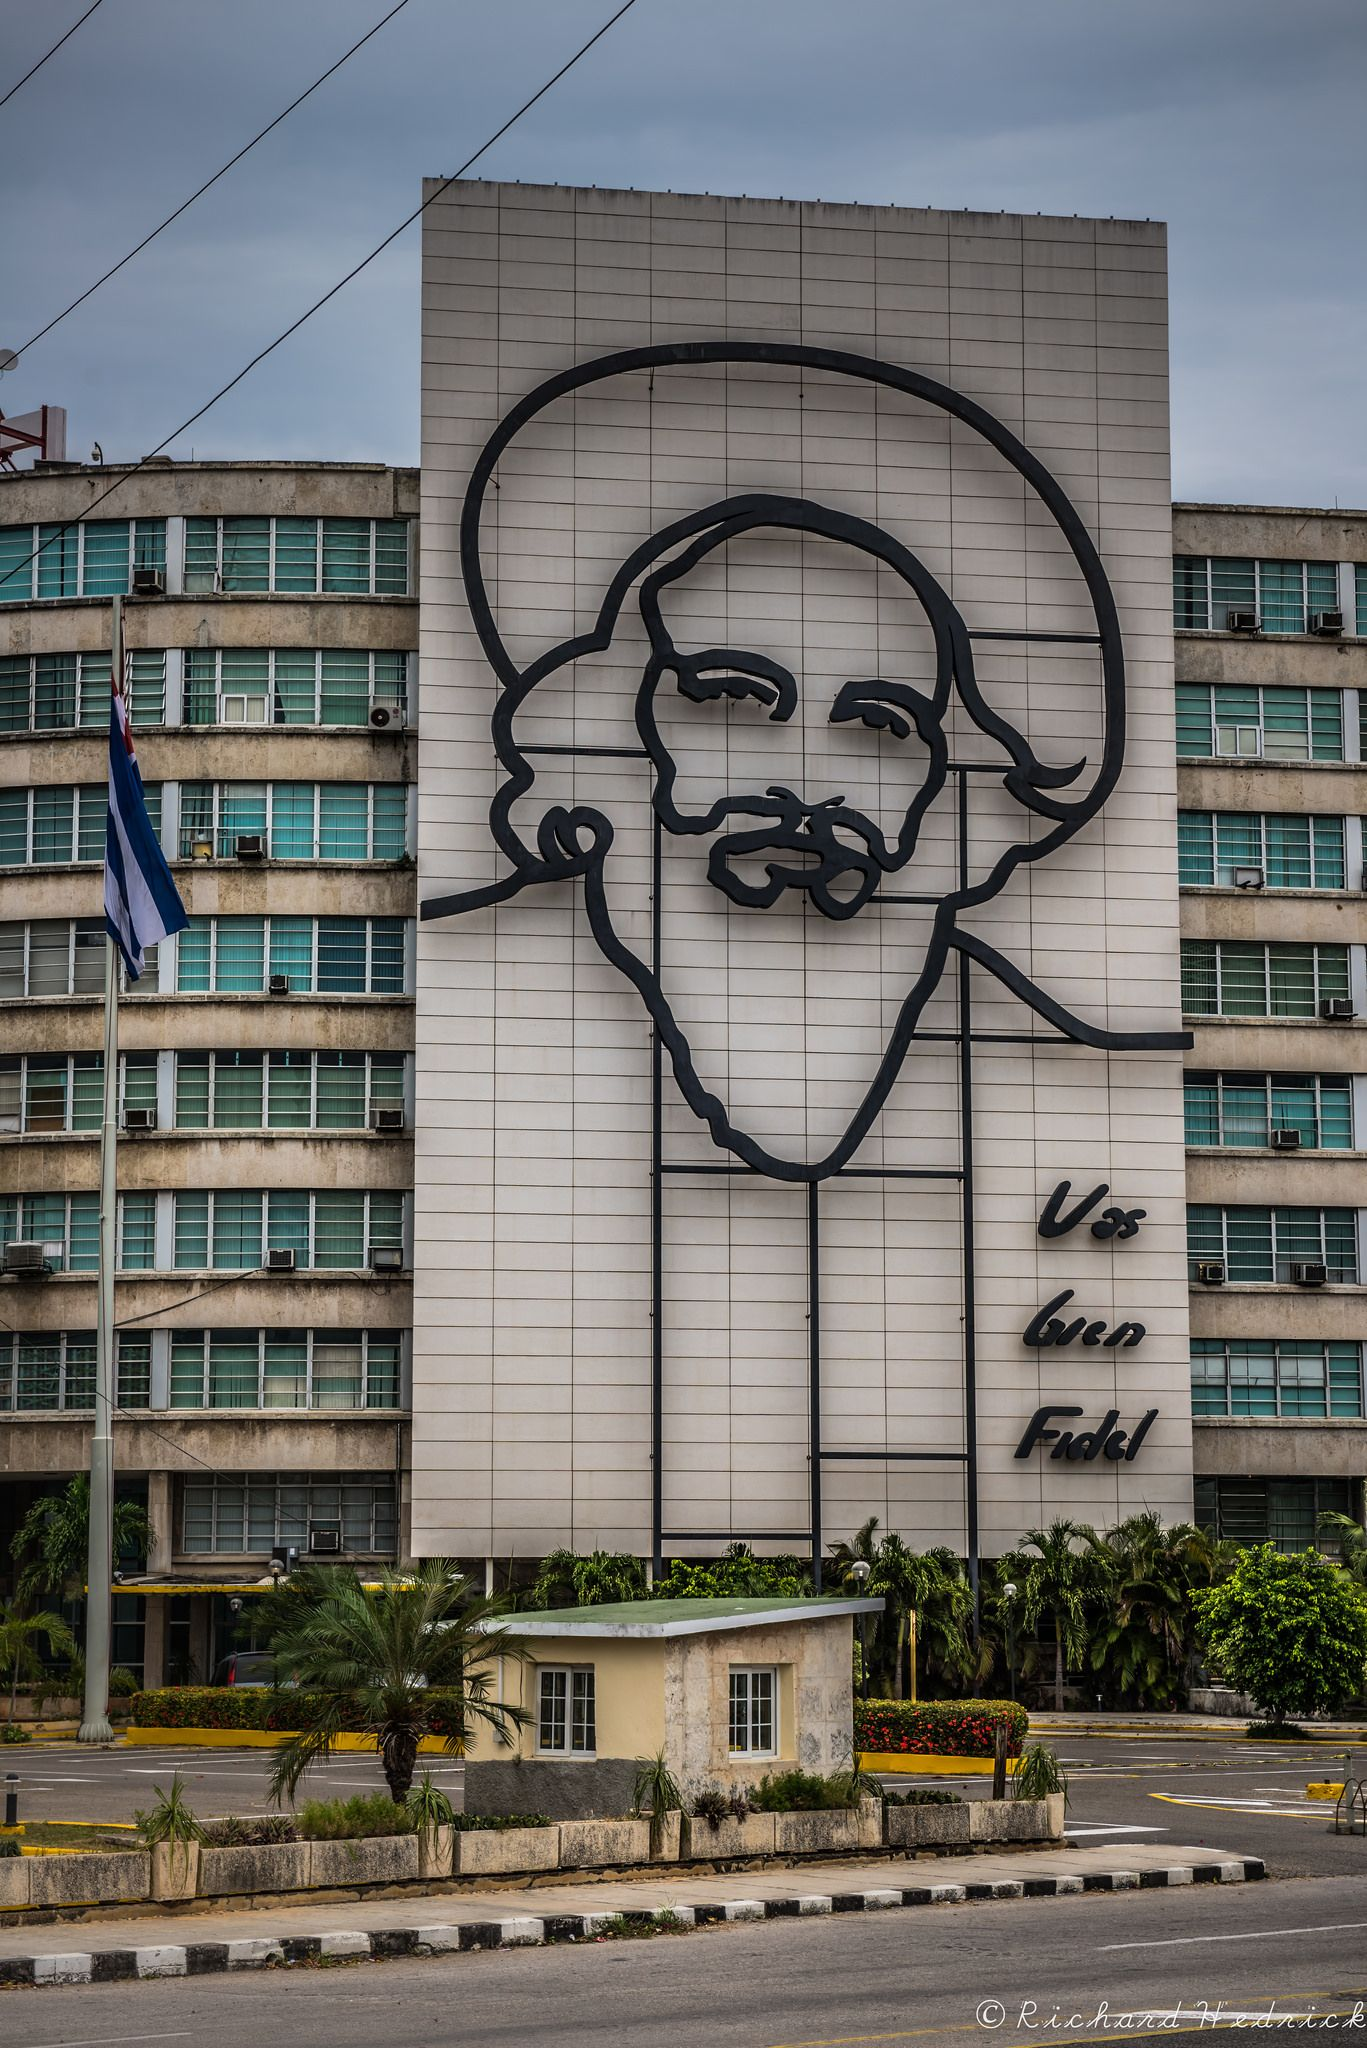 https://flic.kr/p/JqxbGF | Plaza de la Revolución | Camilo Cienfuegos, Vas Bien Fidel, You're going well, Fidel